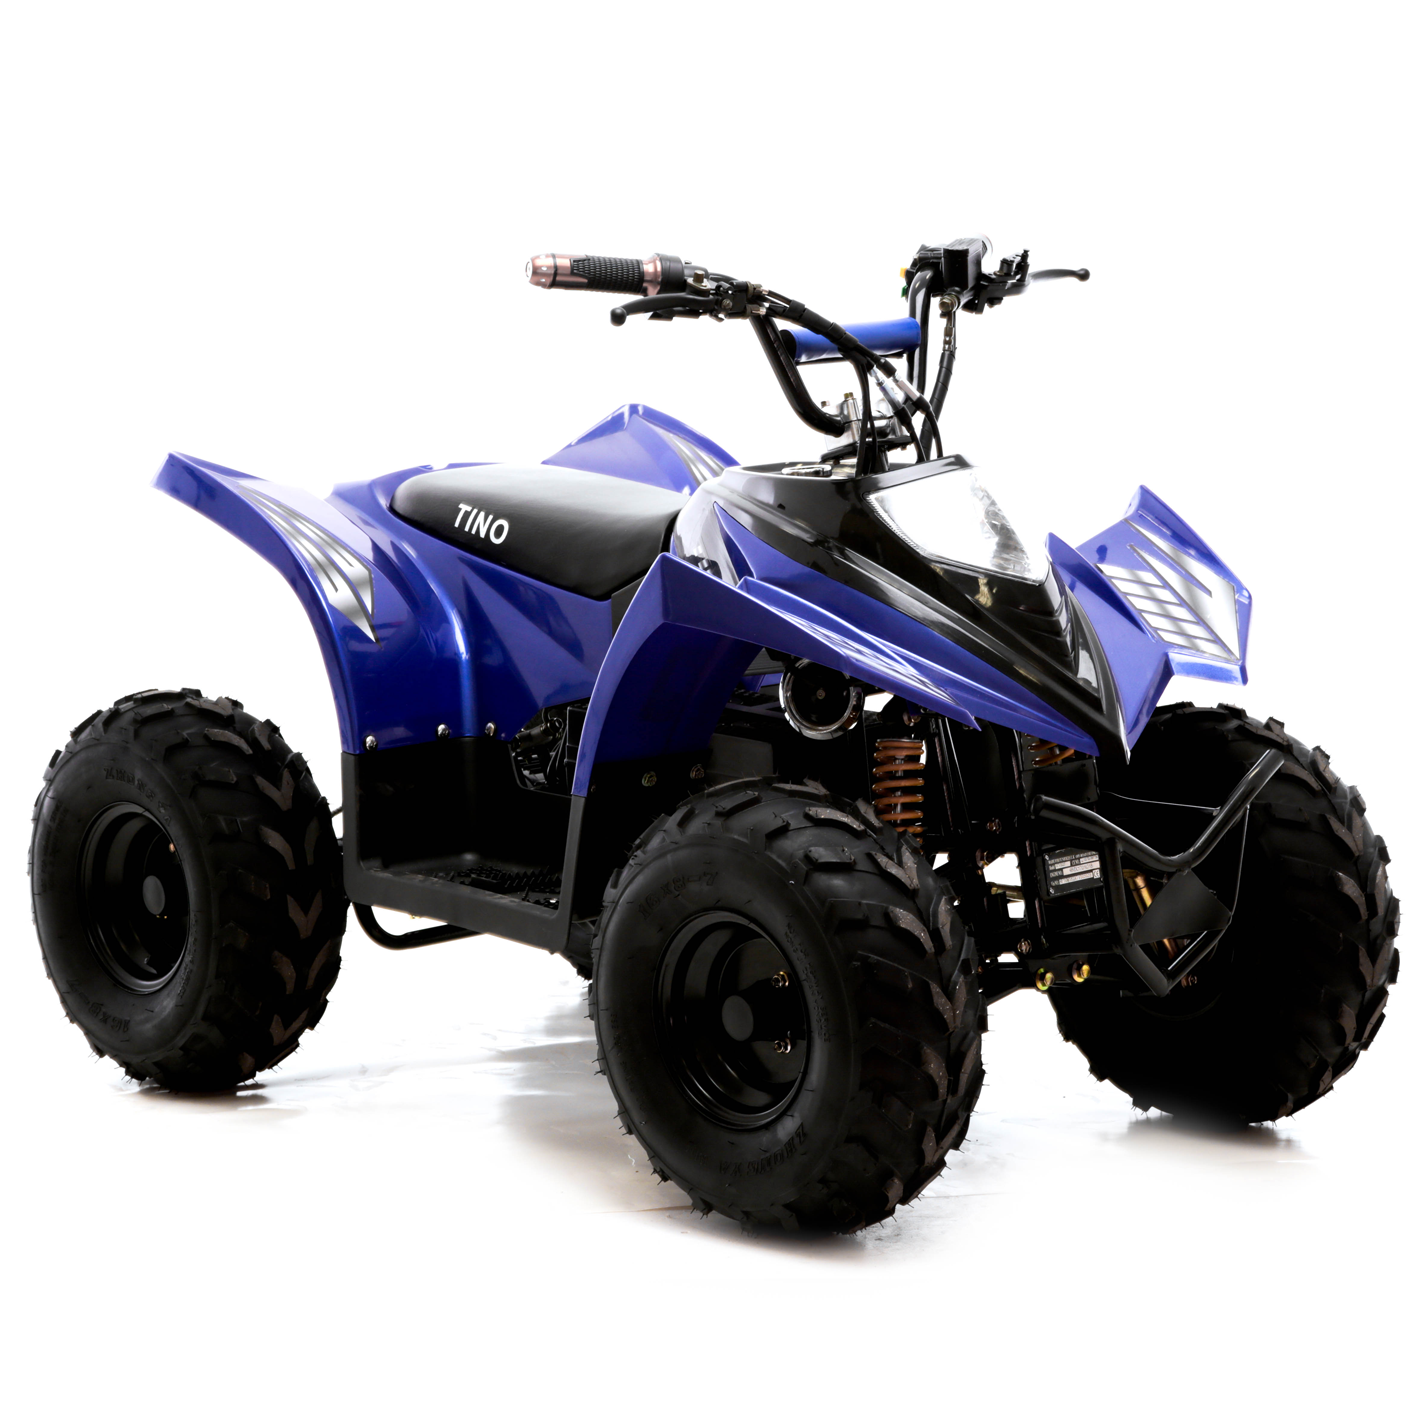 funbikes tino rally 750w blue electric childs quad bike. Black Bedroom Furniture Sets. Home Design Ideas